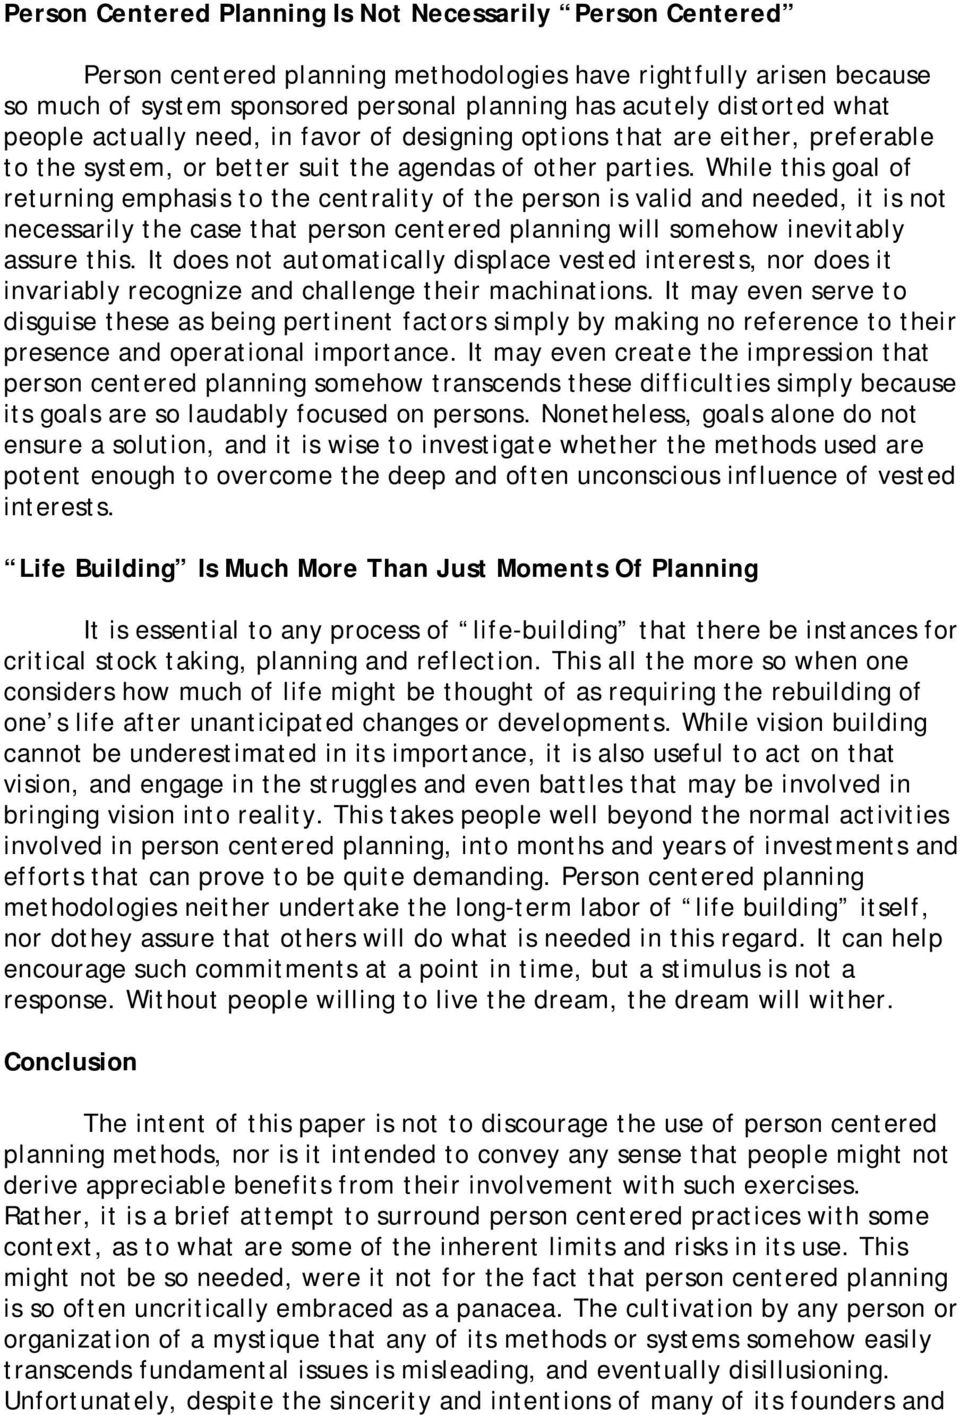 While this goal of returning emphasis to the centrality of the person is valid and needed, it is not necessarily the case that person centered planning will somehow inevitably assure this.